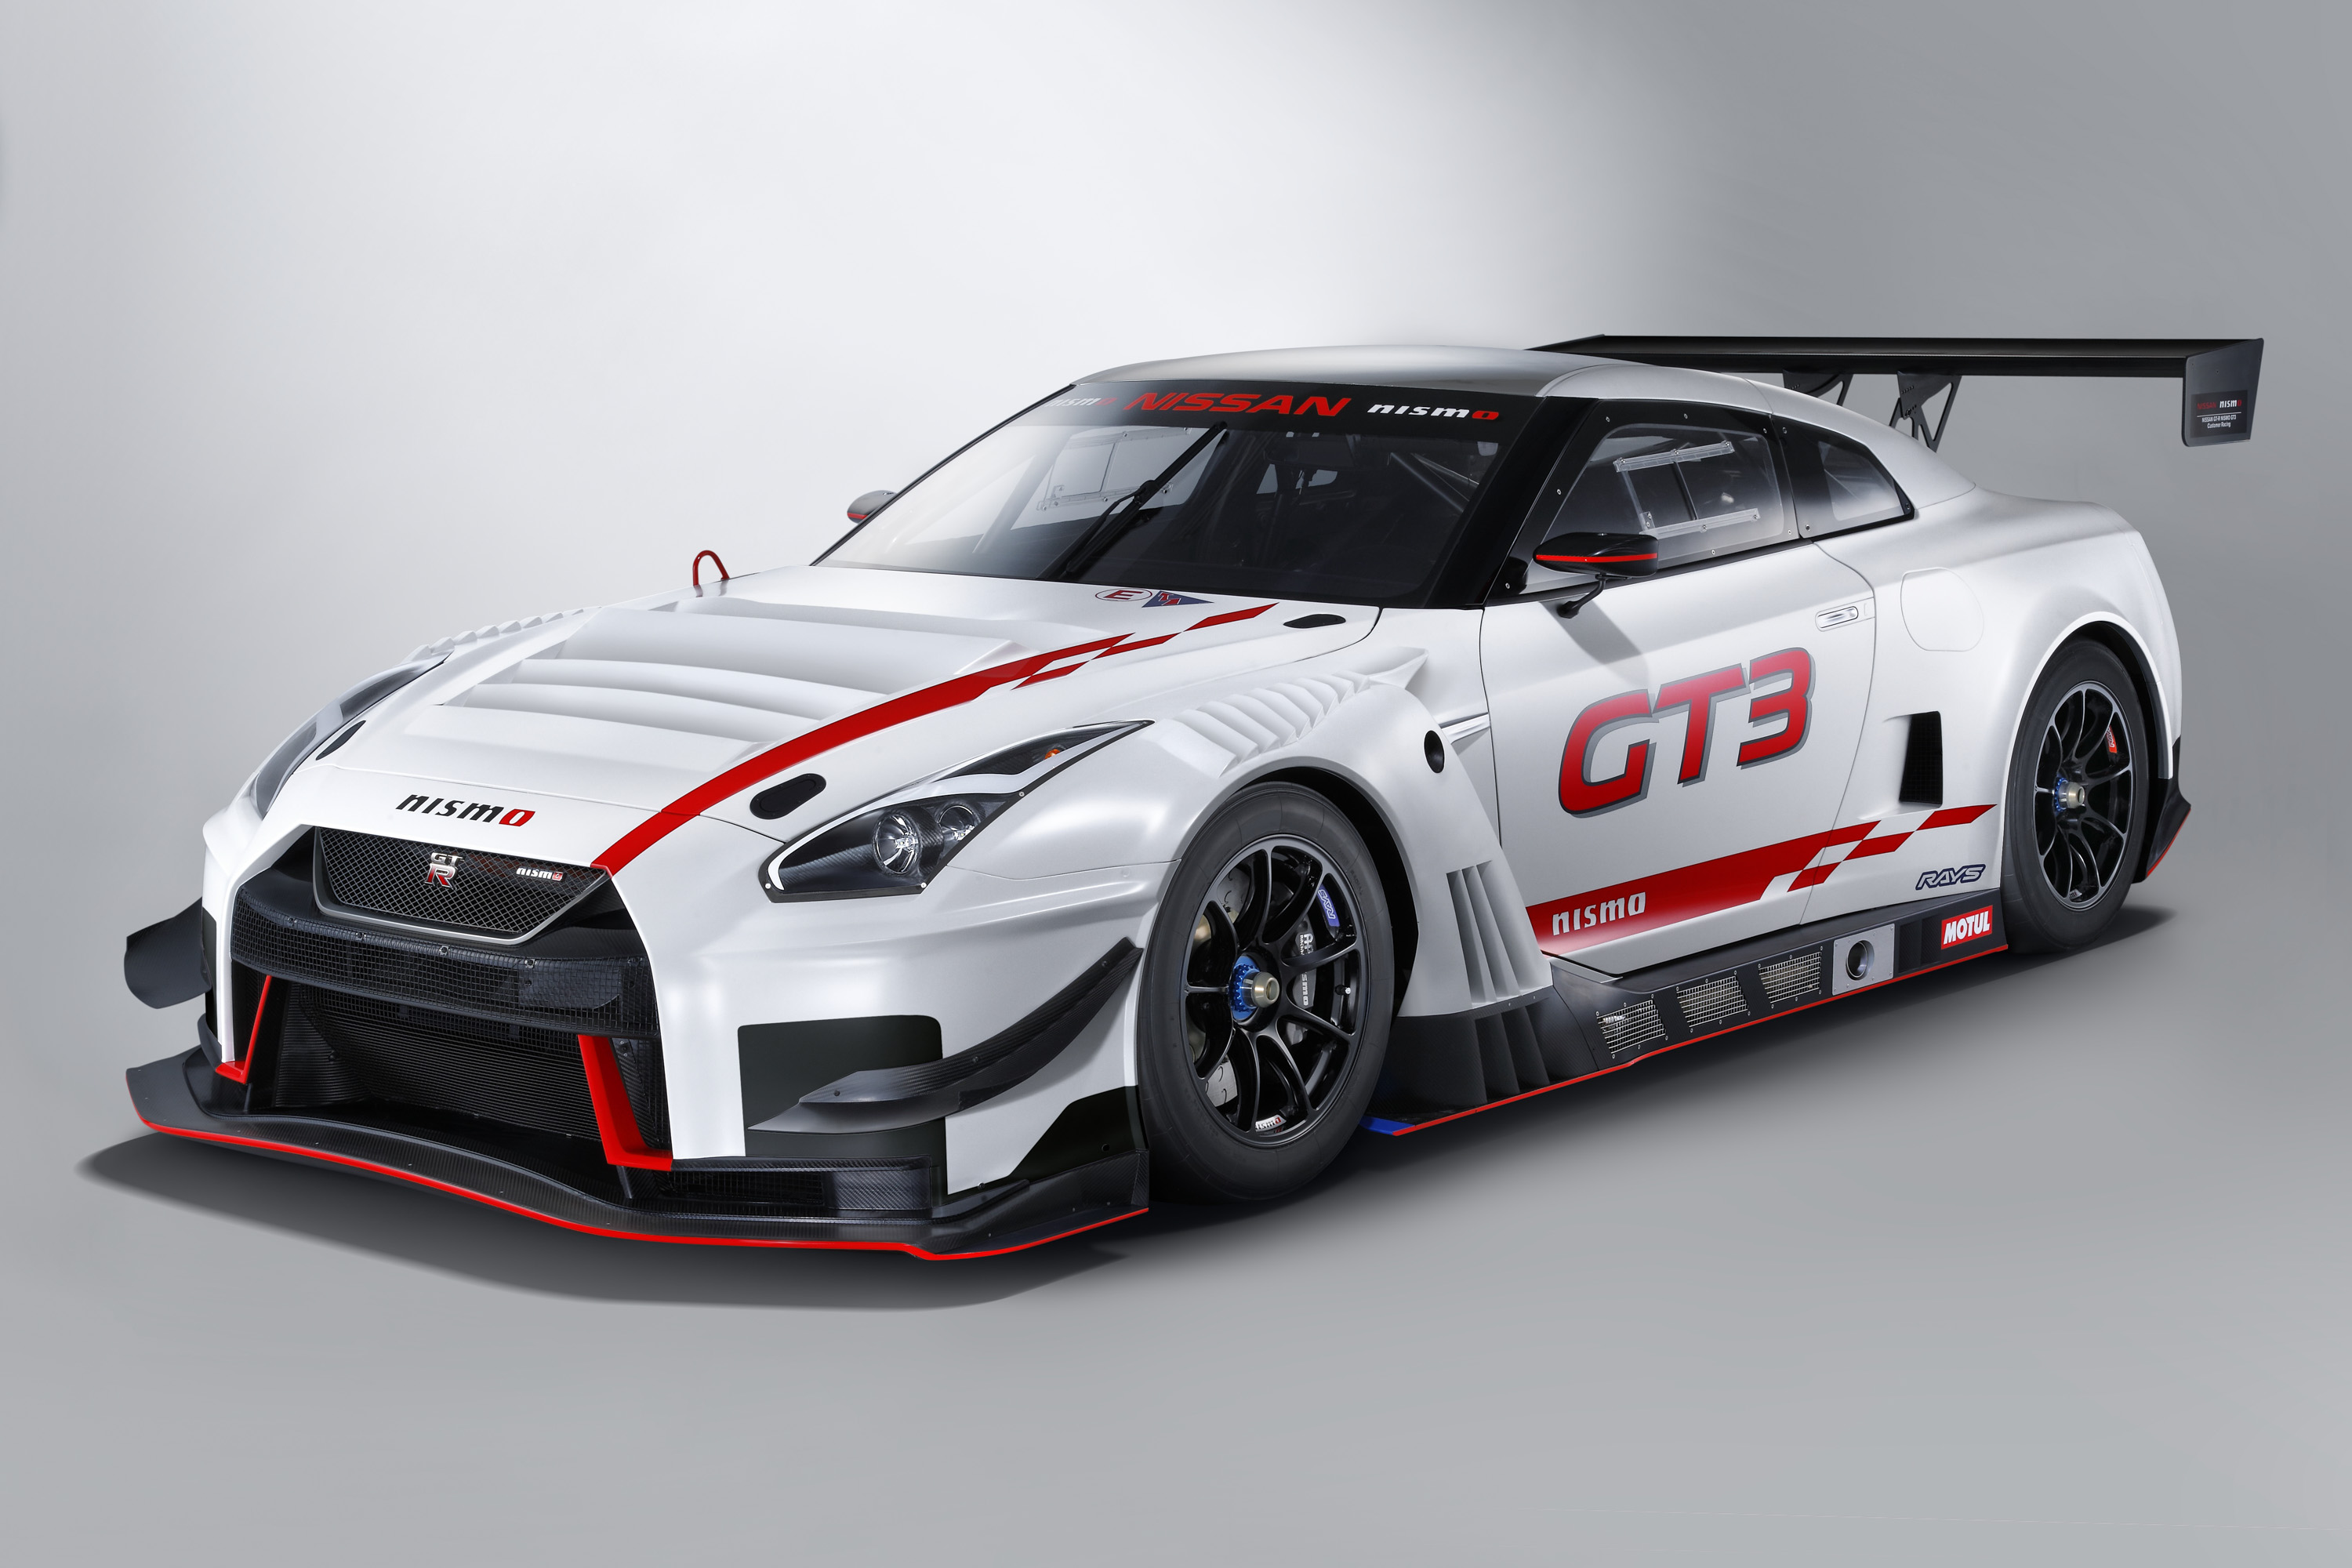 2019 Nissan Gt R Nismo Gt3 Top Speed